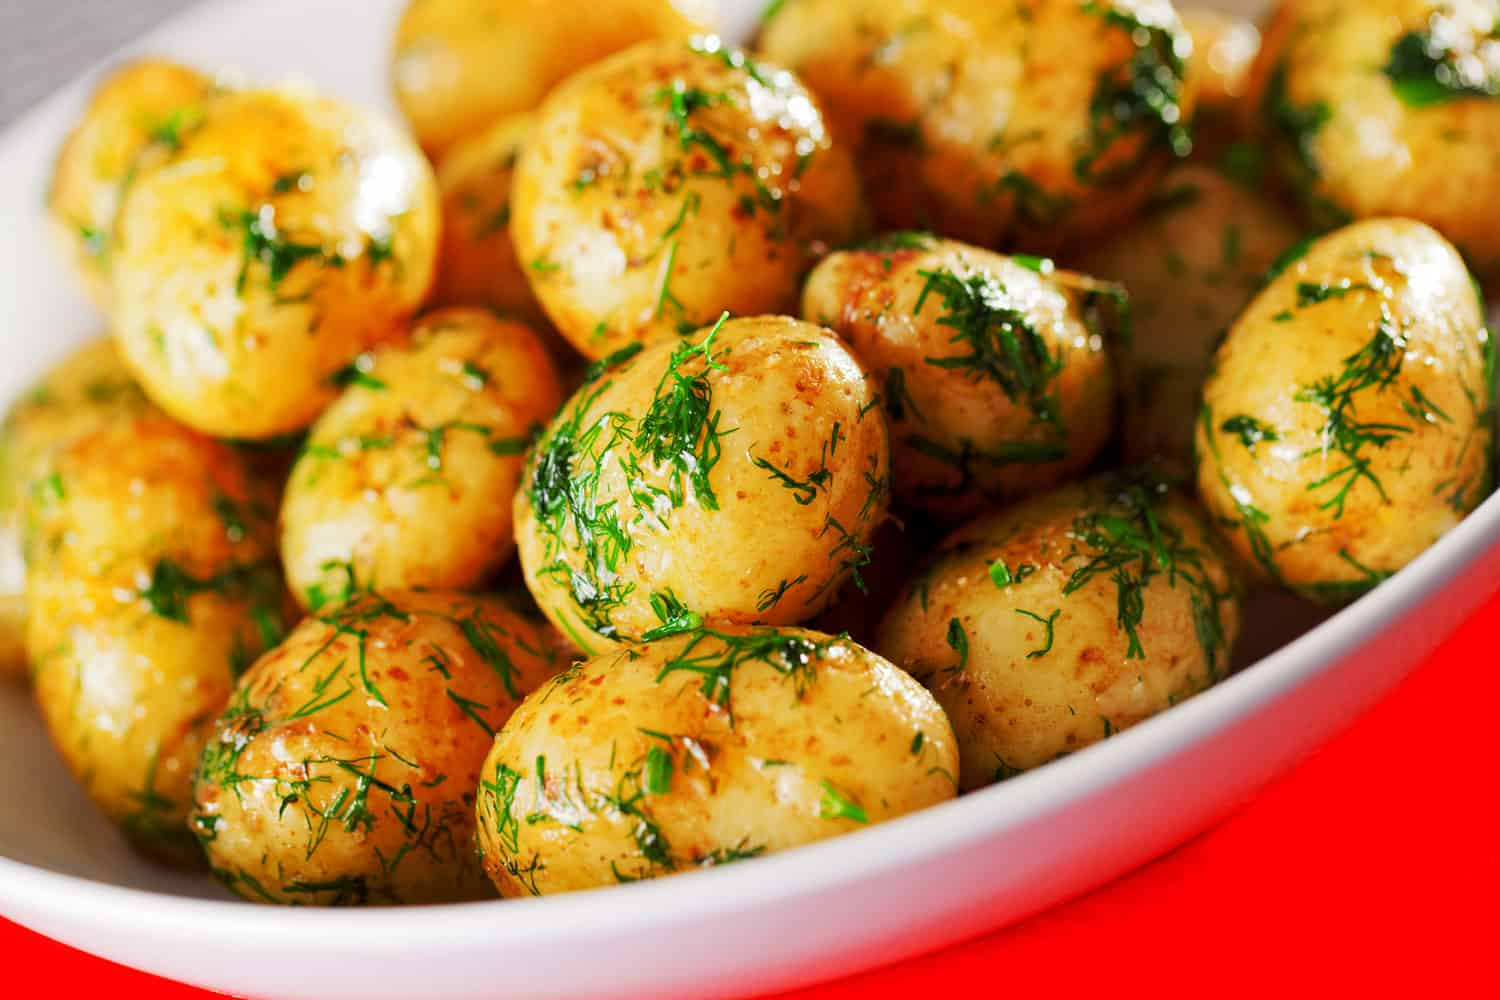 Sauteed potatoes with dill in a plate ready-to-eat